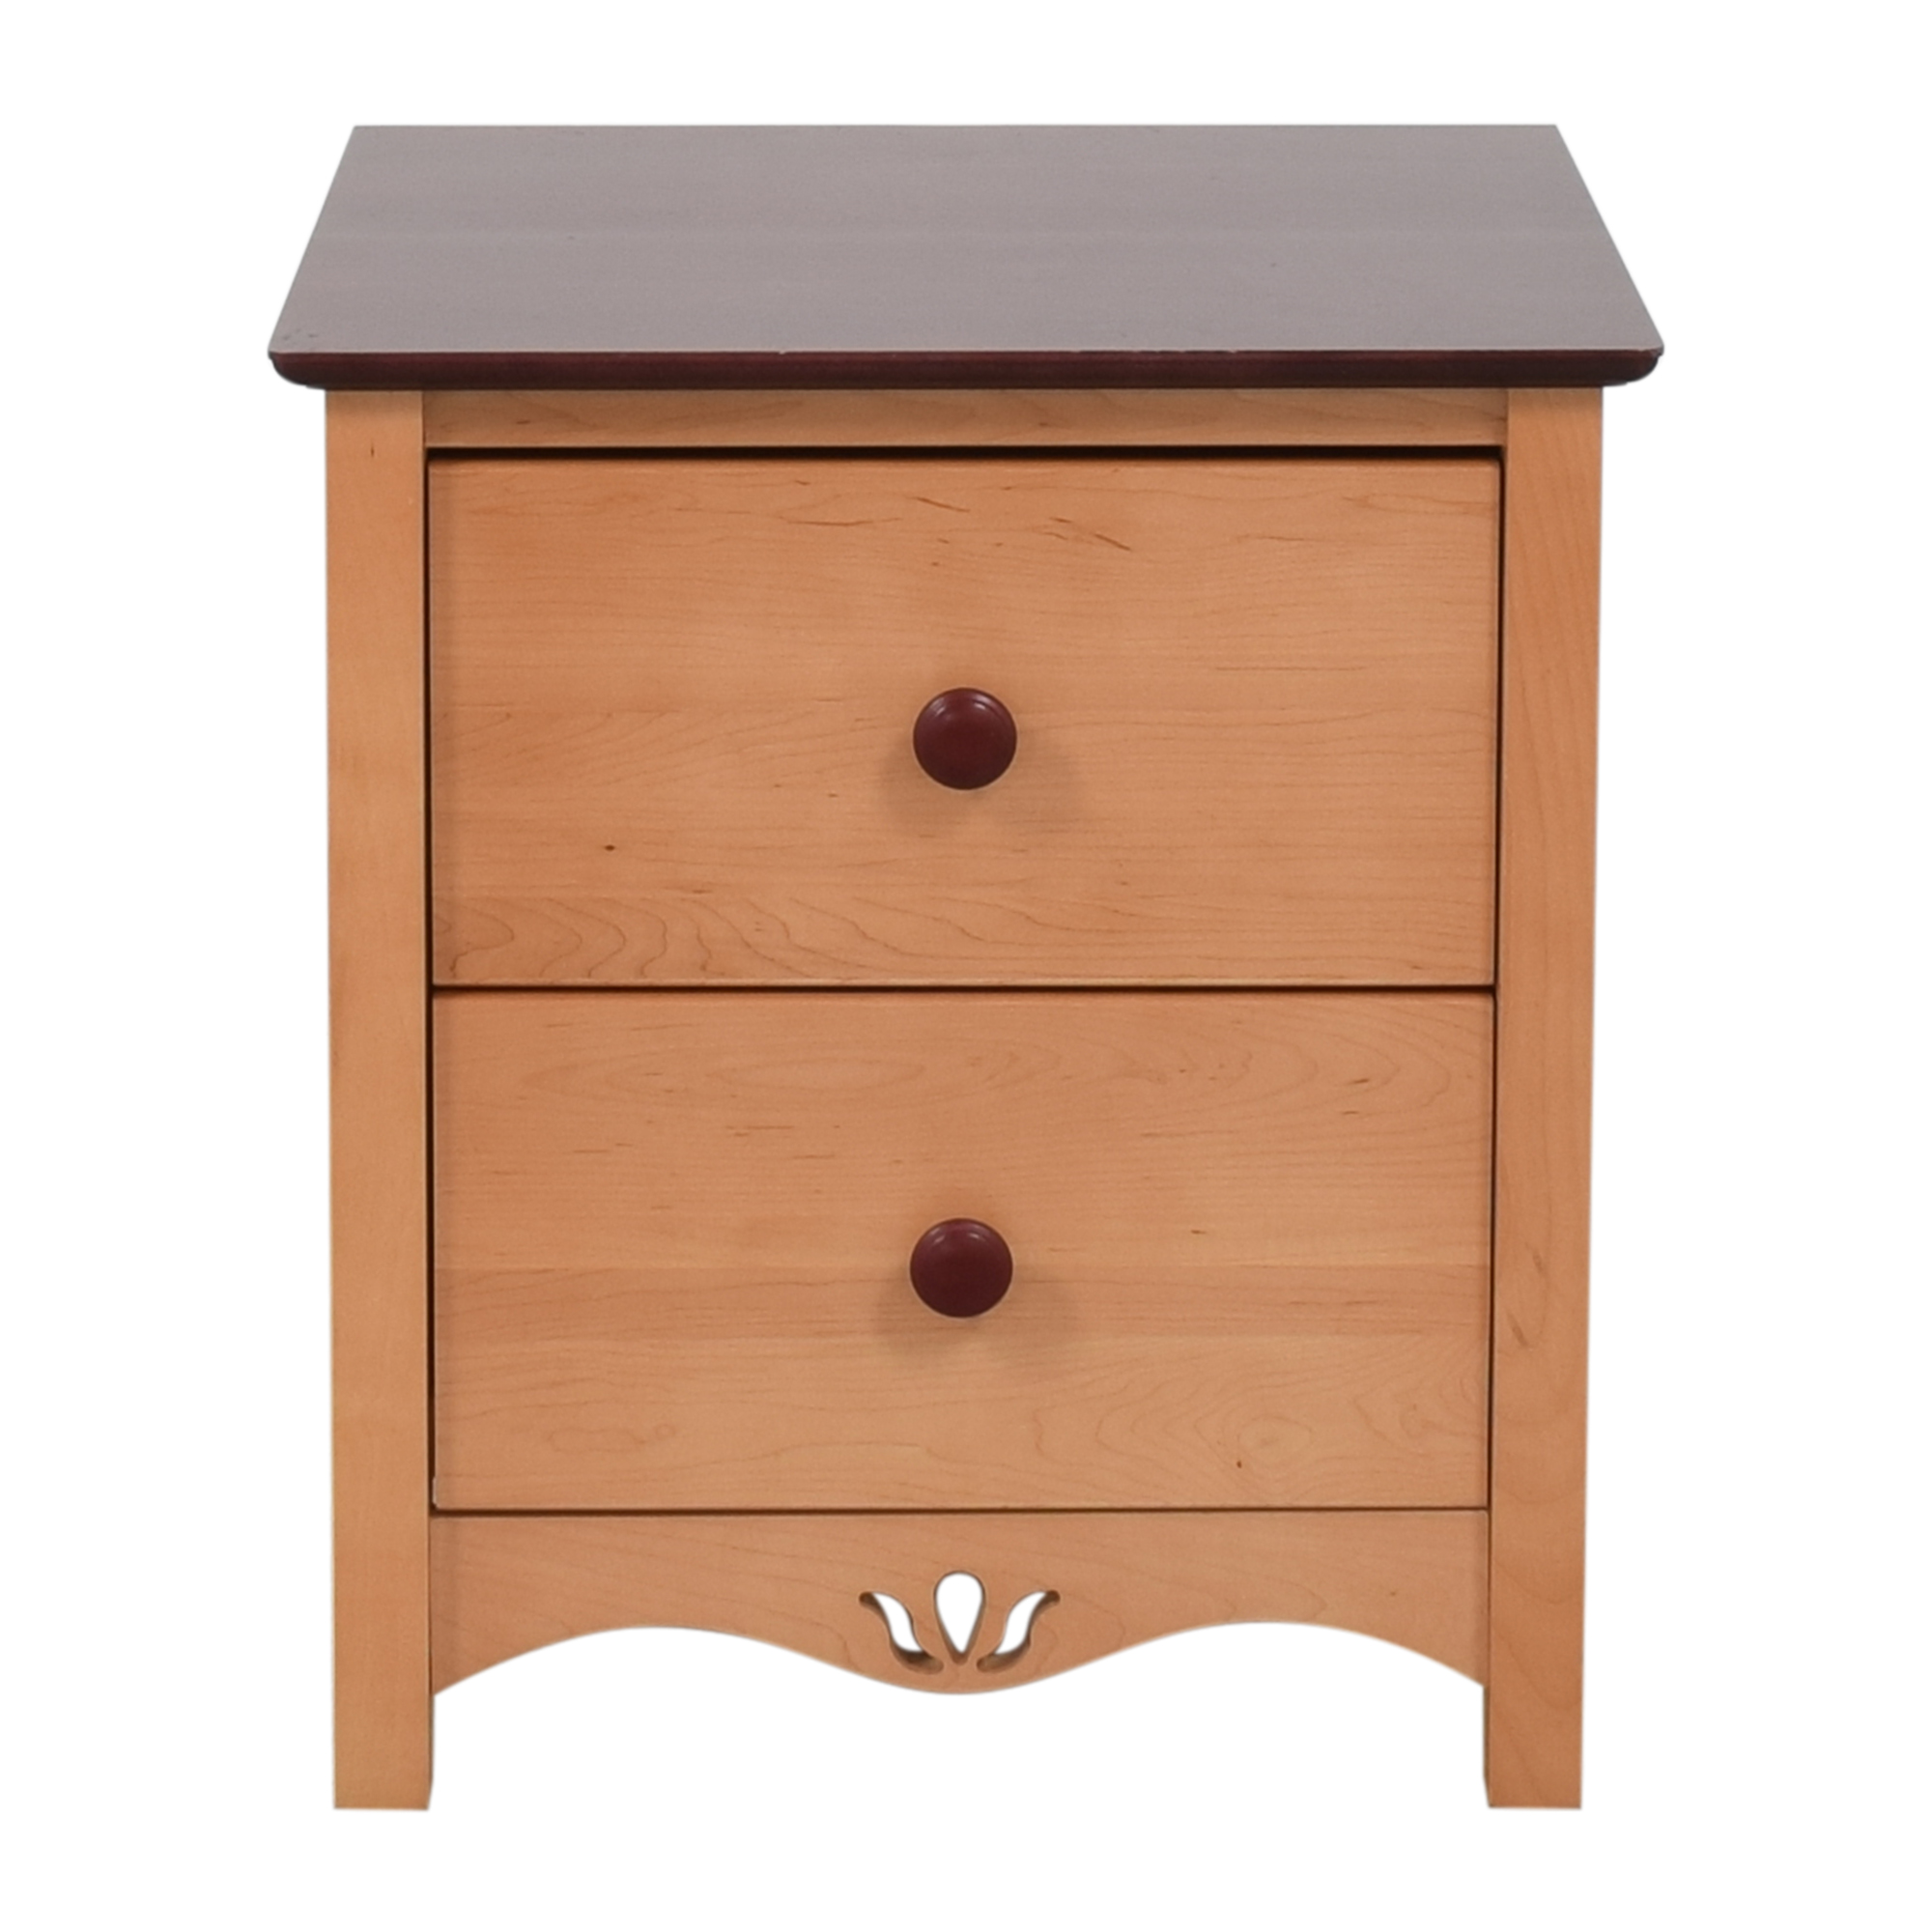 buy Vermont Precision Woodworks Vermont Precision Woodworks Nightstand online